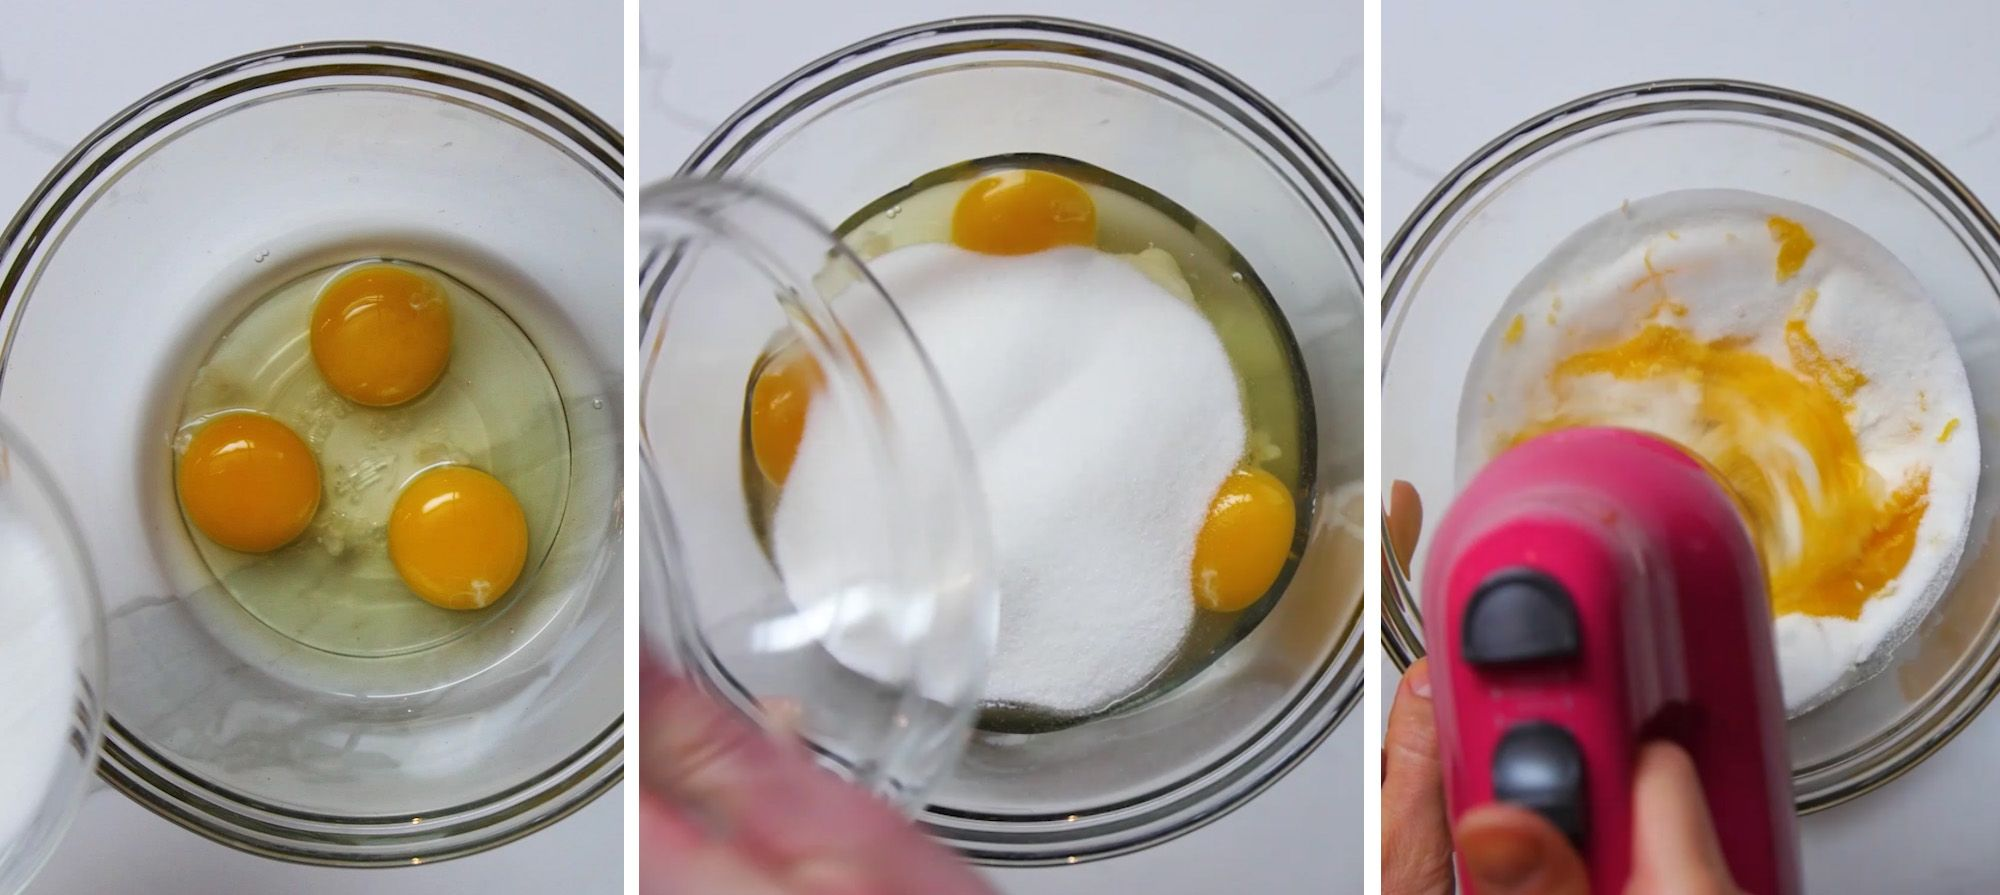 Eggs and sugar being blended in a glass mixing bowl